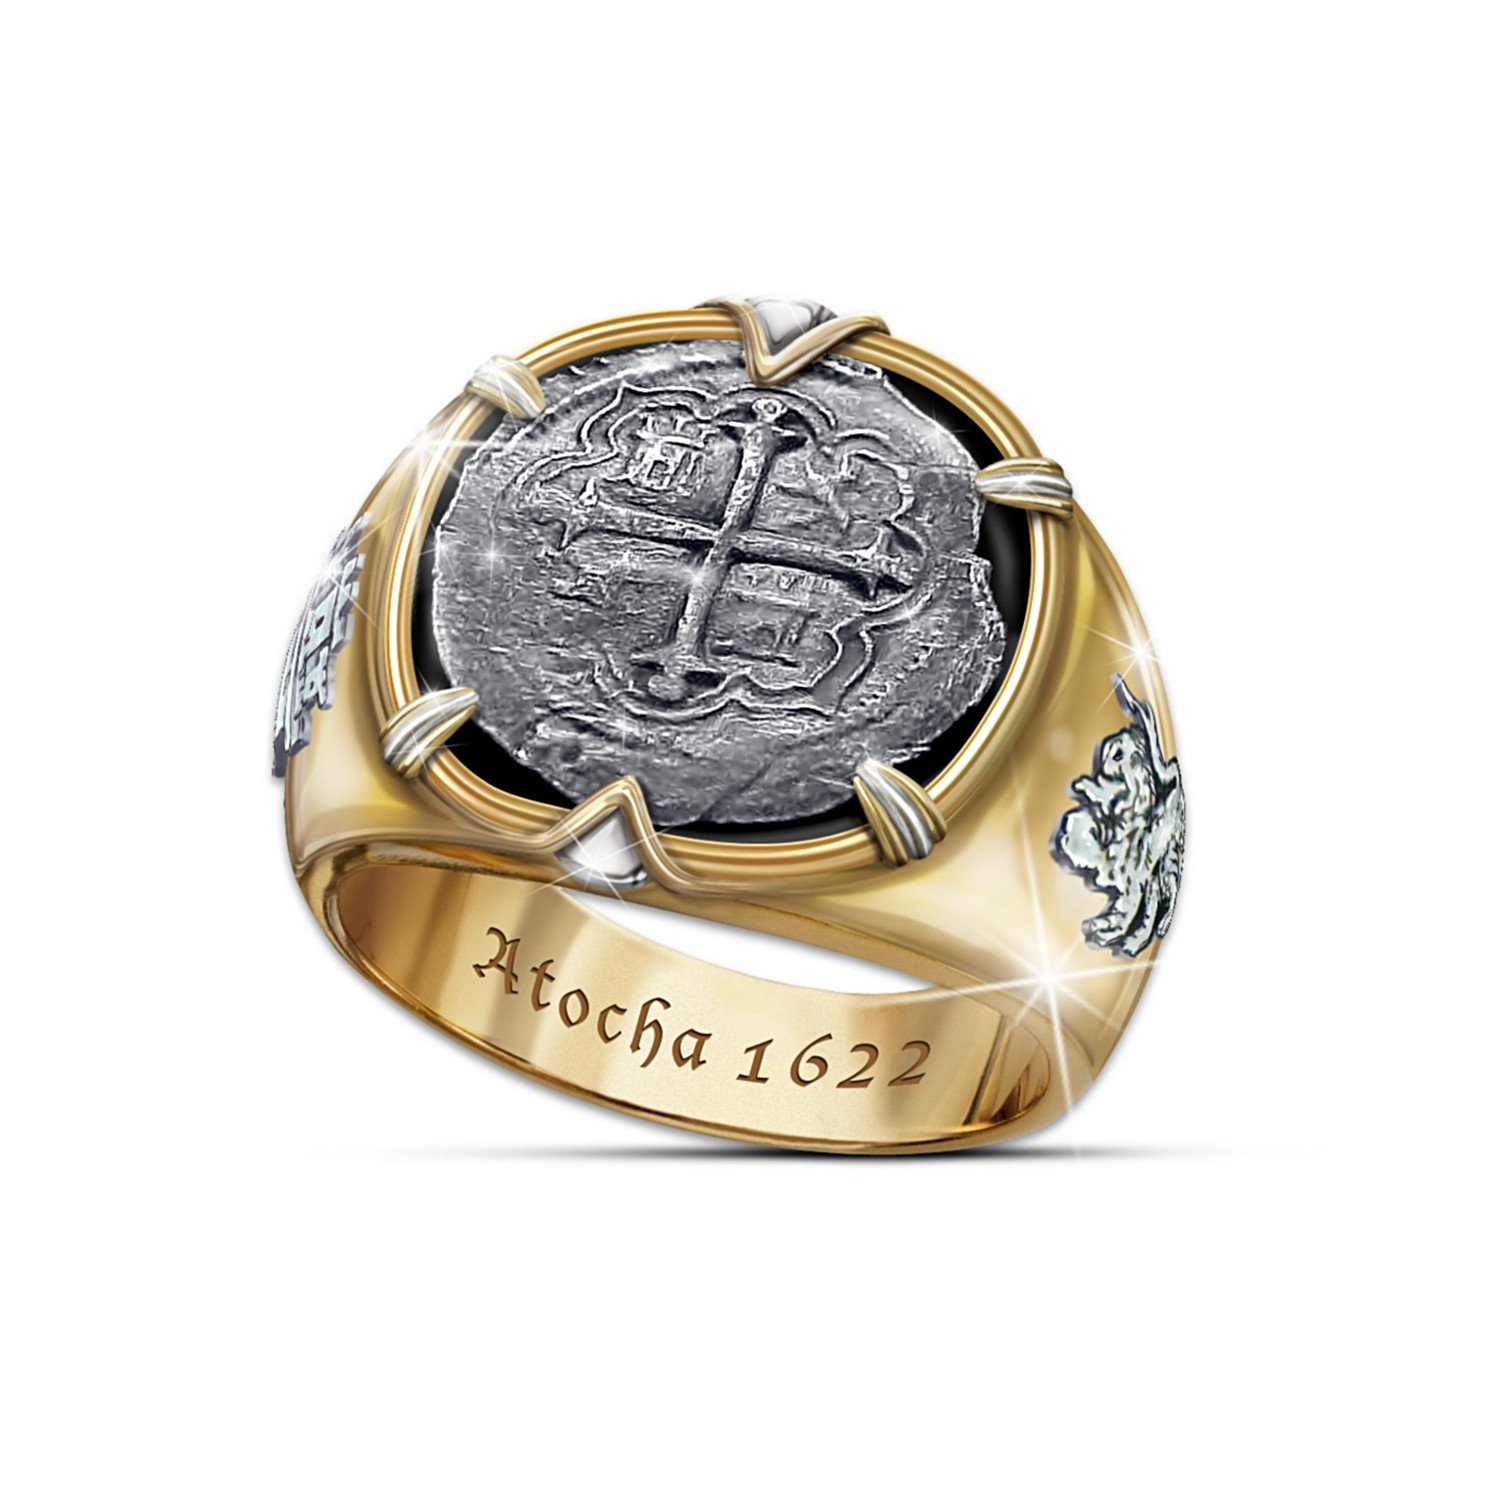 Atocha 1622 Shipwreck Men's Ring Crafted From Sunken 8 Reales Silver Coins: 13.5